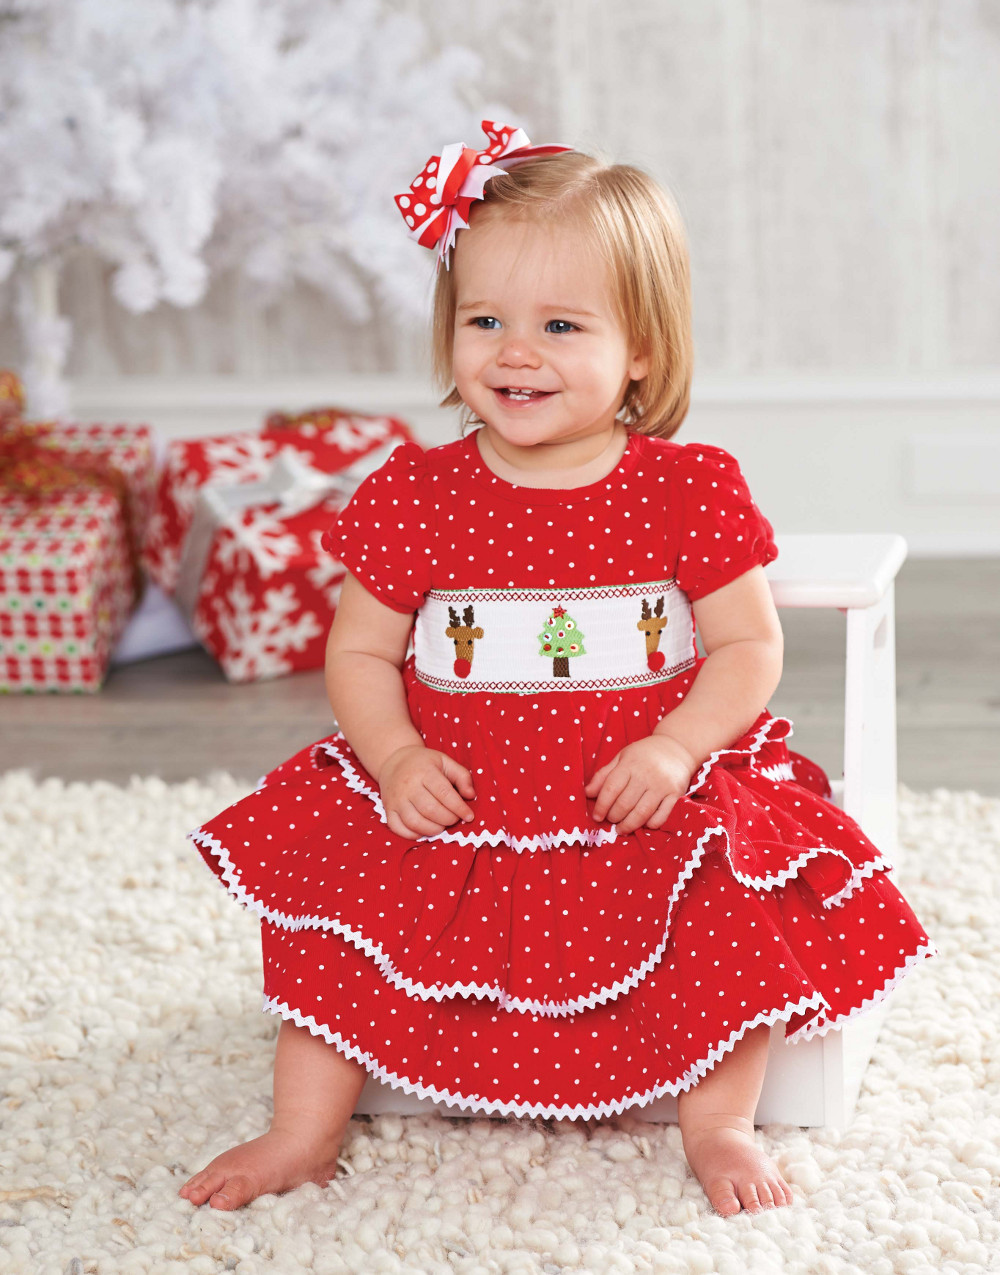 Mud Pie Holiday Dress: Red Girls Infant or Toddler Corduroy Smocked Chistmas Dress 2T at Sears.com